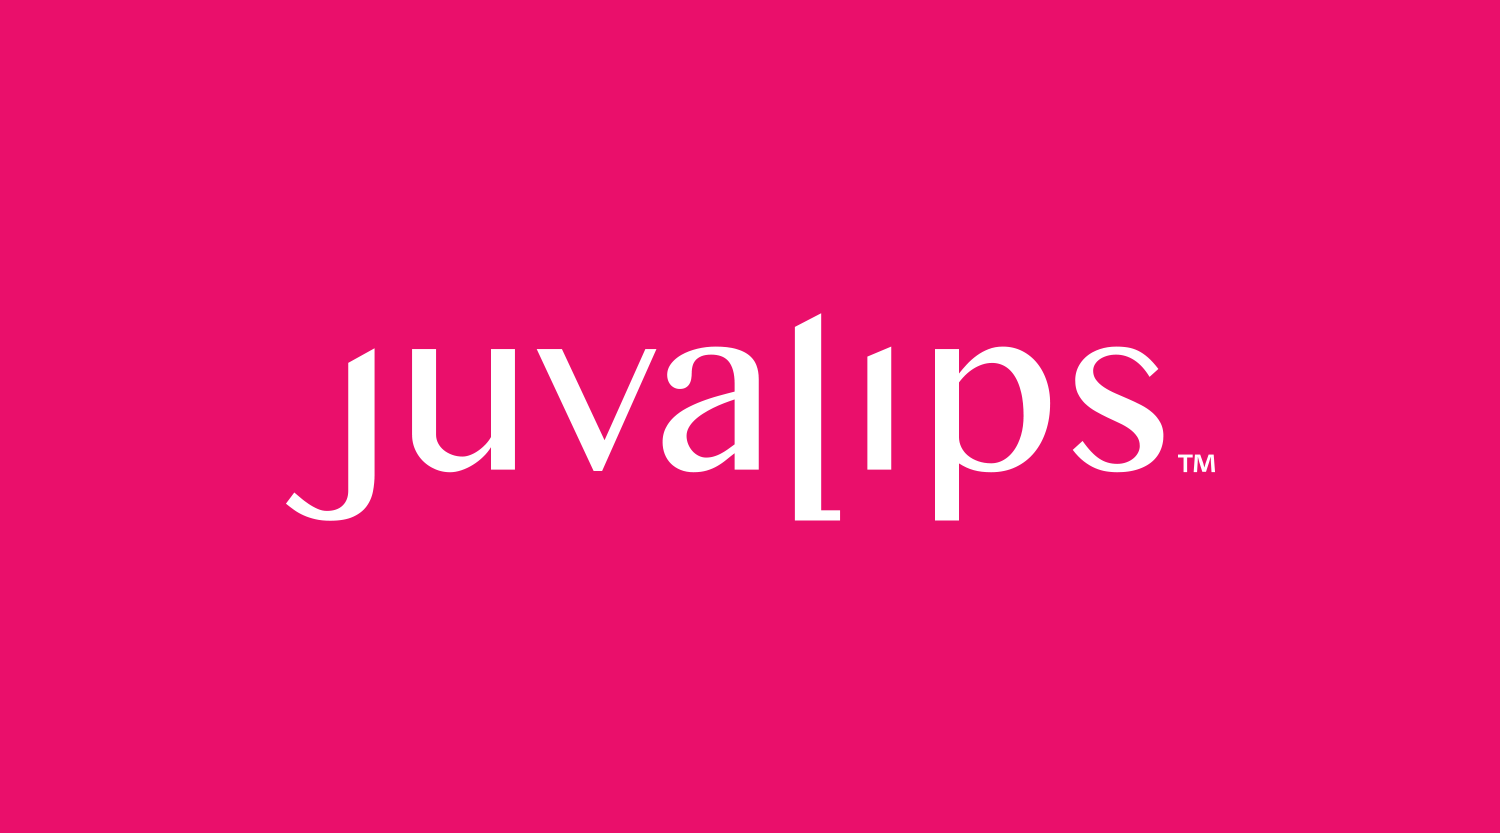 JuvaLips Website & Digital Campaign:   Web Design & Development, SEO, Digital Campaign, Email Design, and Copywriting